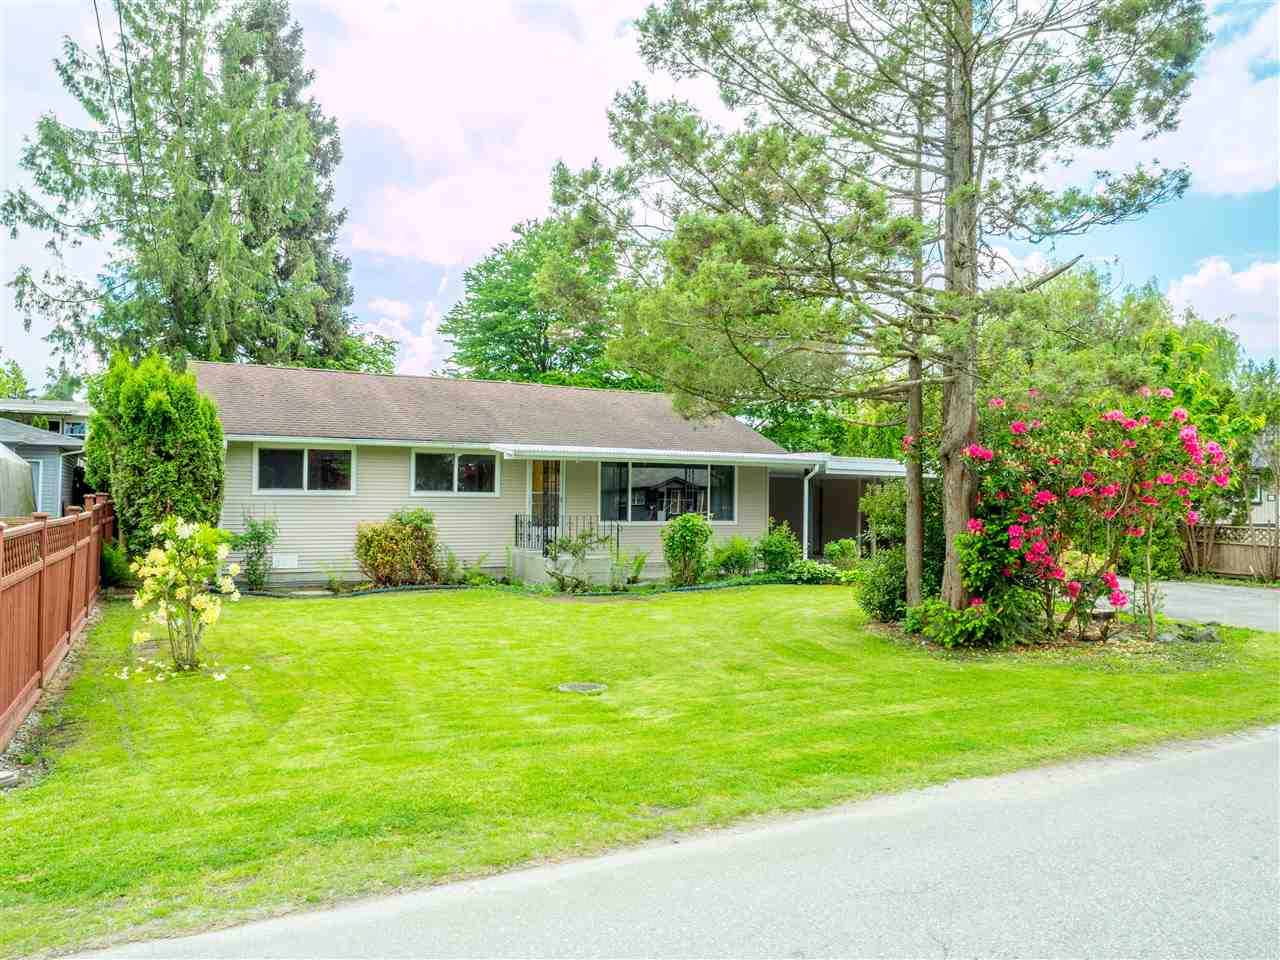 FEATURED LISTING: 22622 123 Avenue Maple Ridge